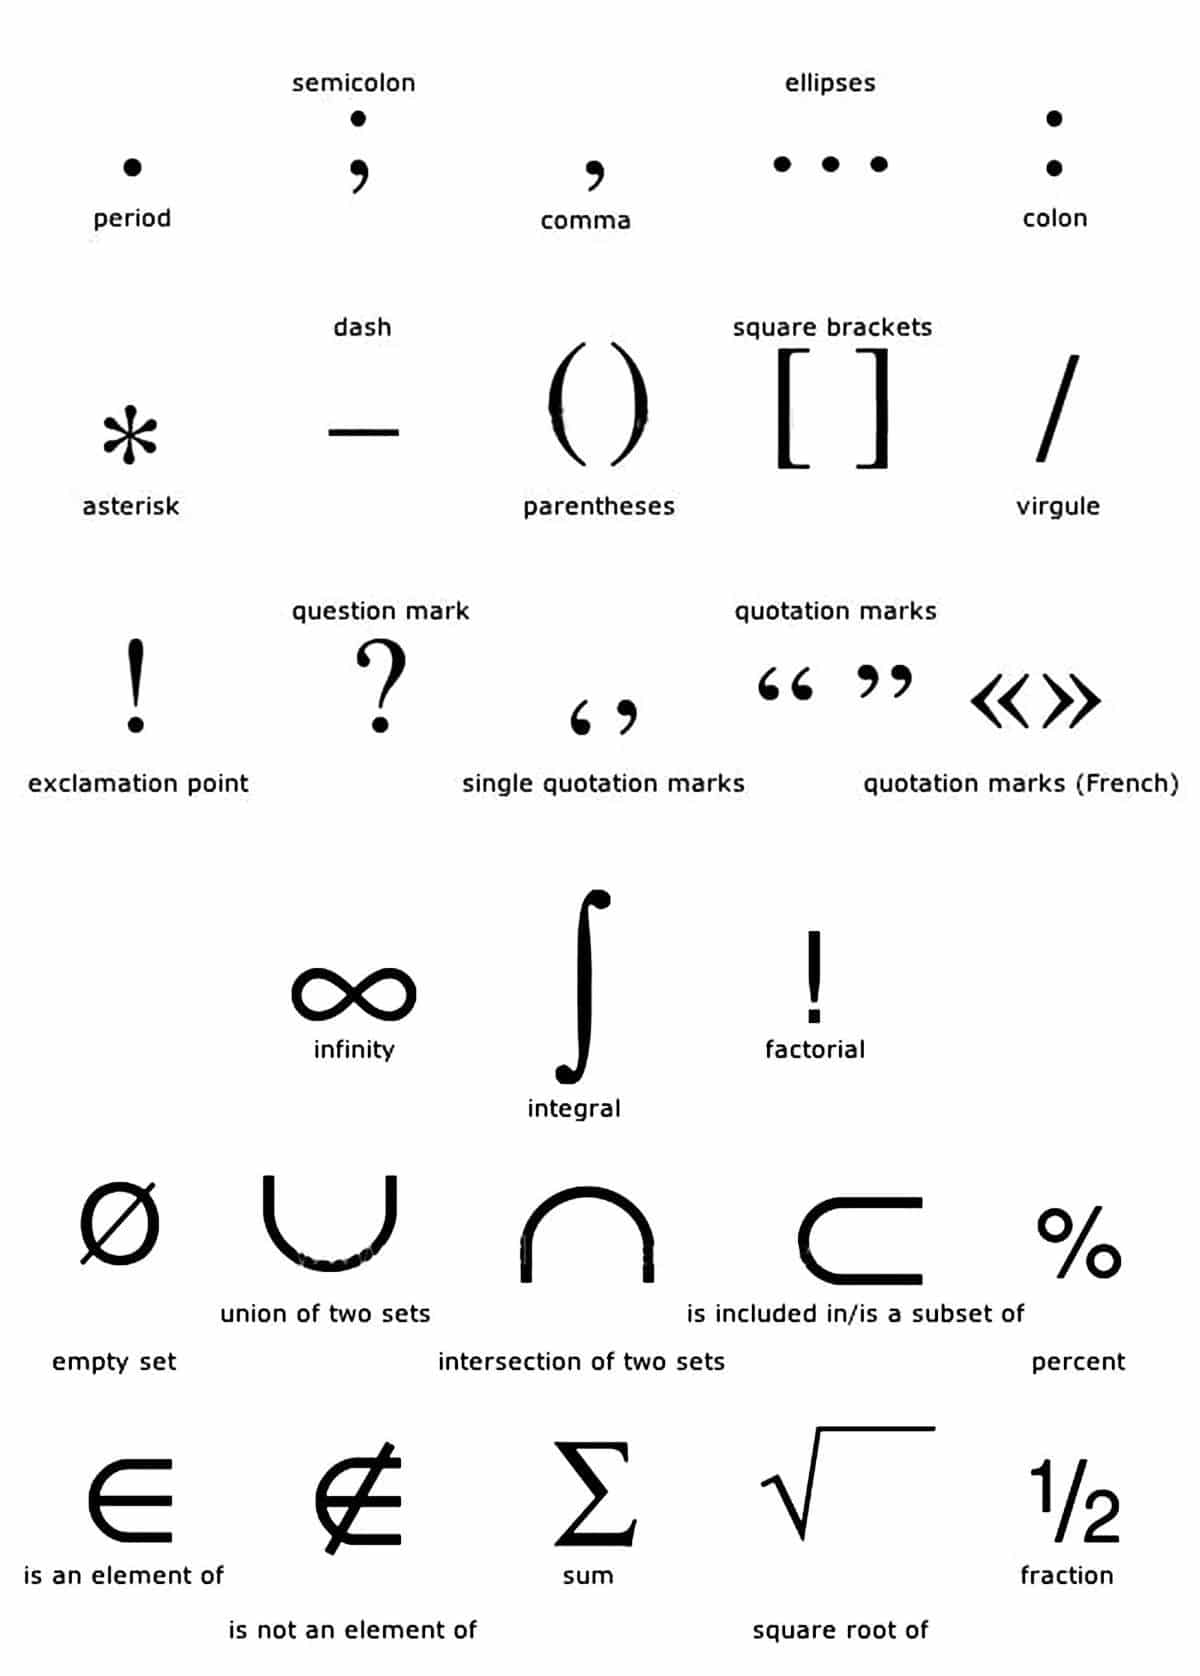 Punctuation Marks, Keyboard and Math Symbols in English 14